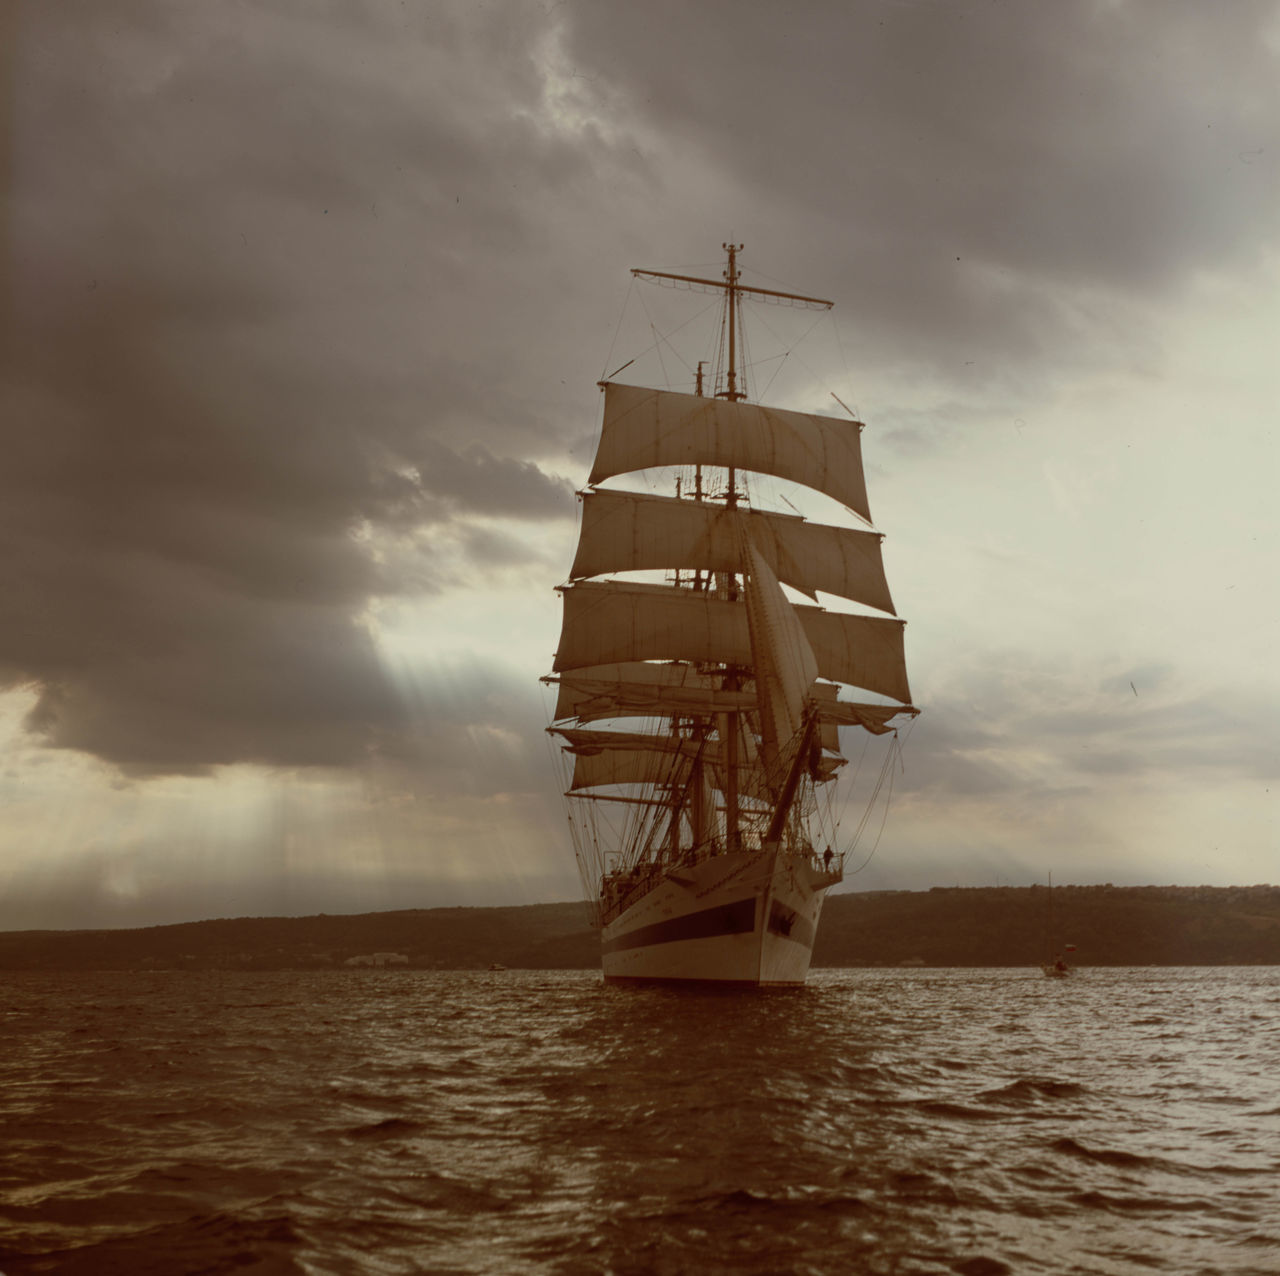 Shot taken with a medium format film camera during the Tall Ships Regatta. The Mir barque has spread its sails proudly, cruising in the evening sea. Boat Ride Bułgaria Cloud - Sky Cruise Ship Film Photography Frigate Nature No People Regatta Romantic Russian Sailboat Sailing Ship Sea Sea And Sky Sea Life Seascape Seaside Ship Tall Ship Varna Vintage Photo Water Waves Yacht First Eyeem Photo